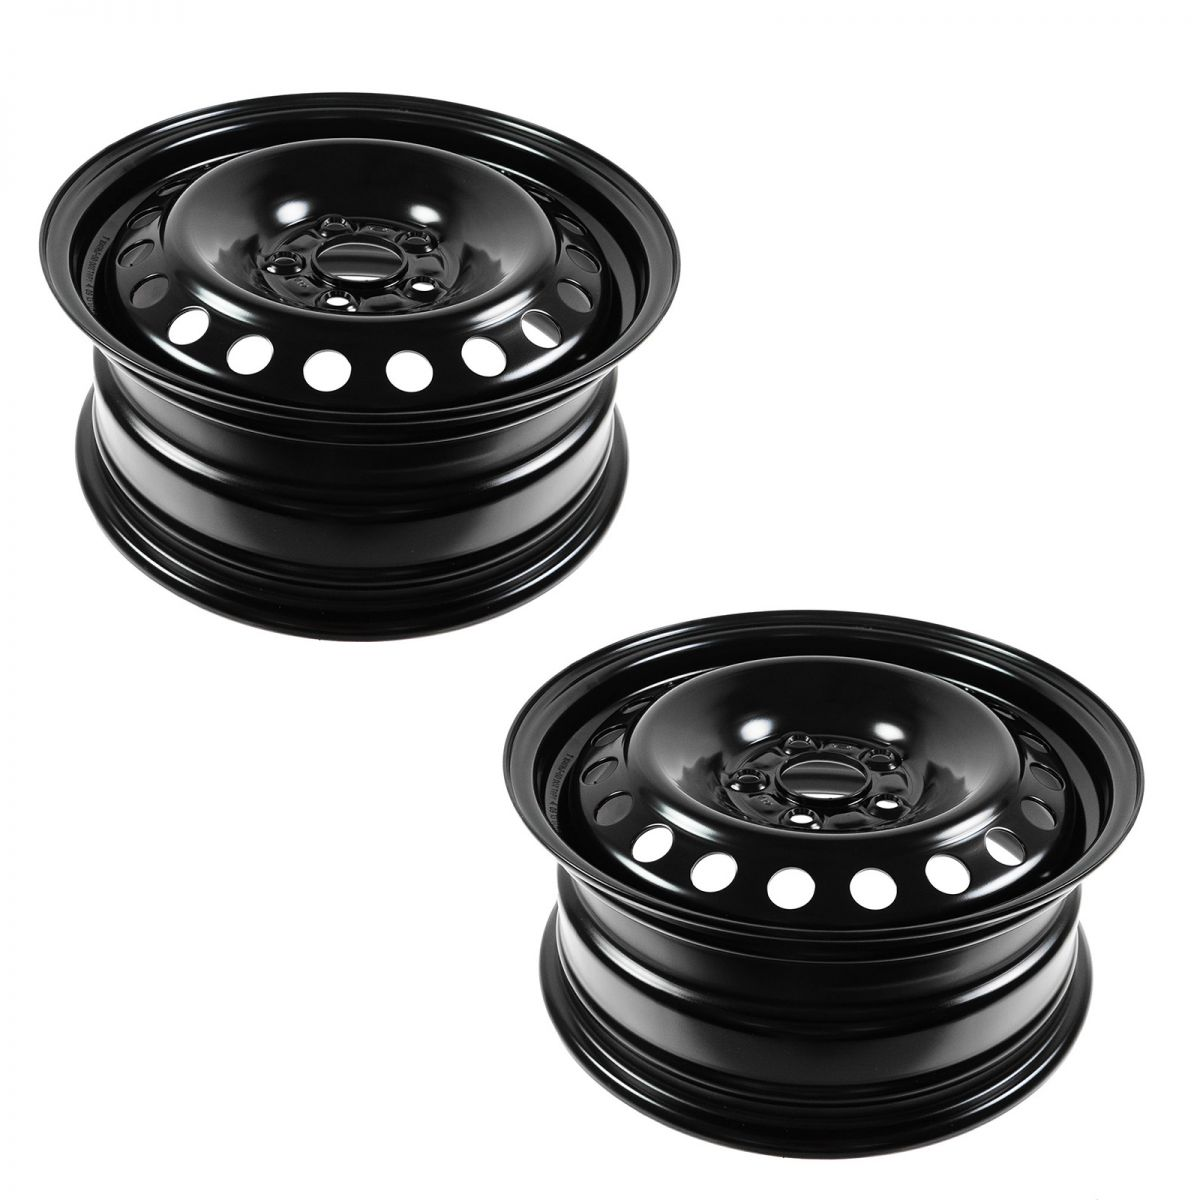 16 inch Steel Replacement Wheel Rim New Pair for 12 13 ...